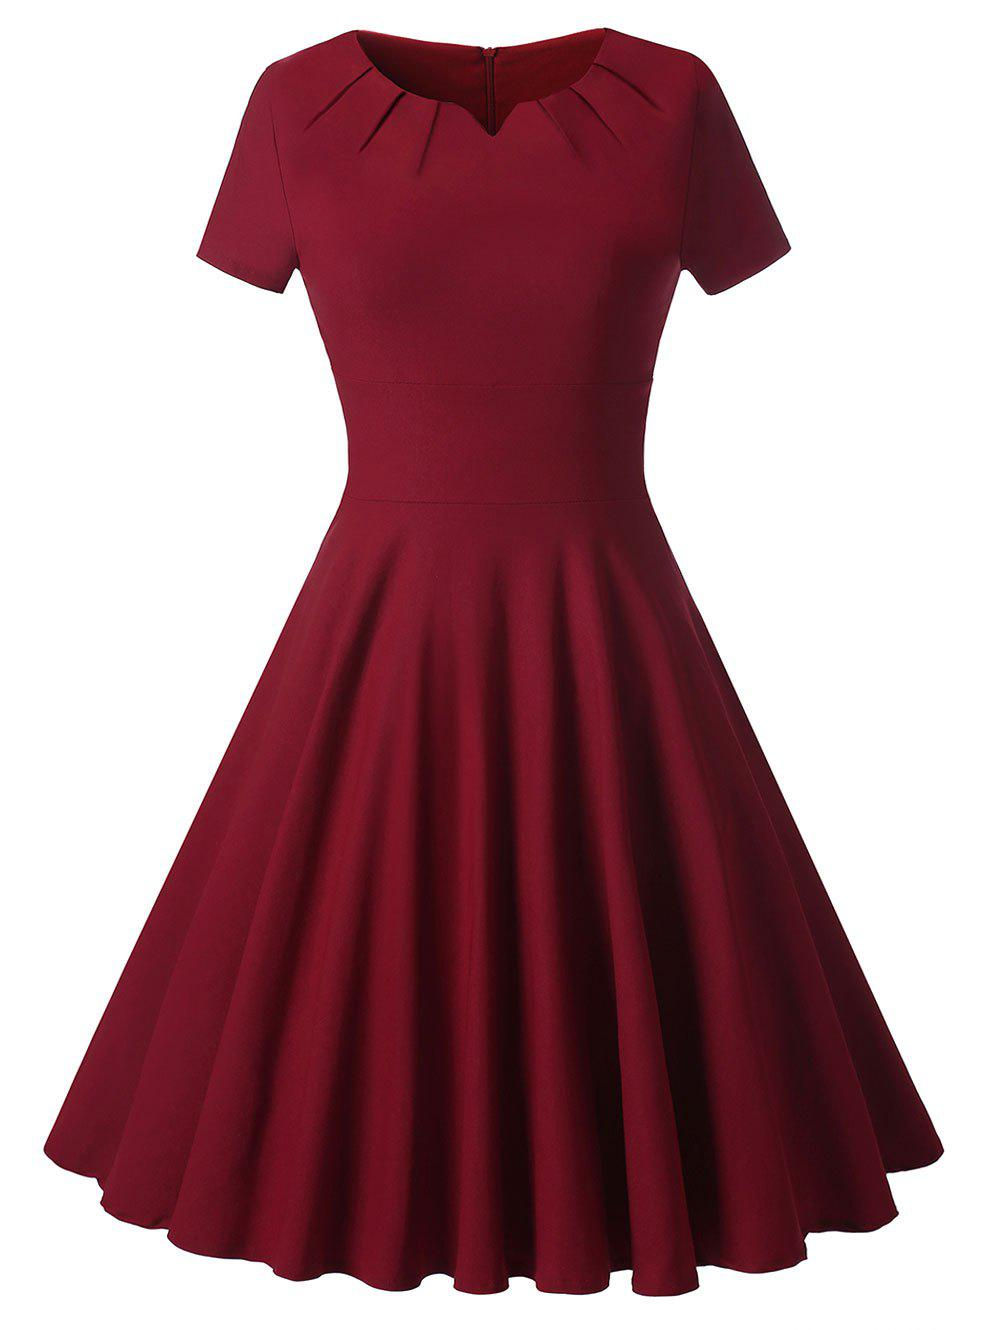 Latest Knee Length Vintage Cocktail Dress